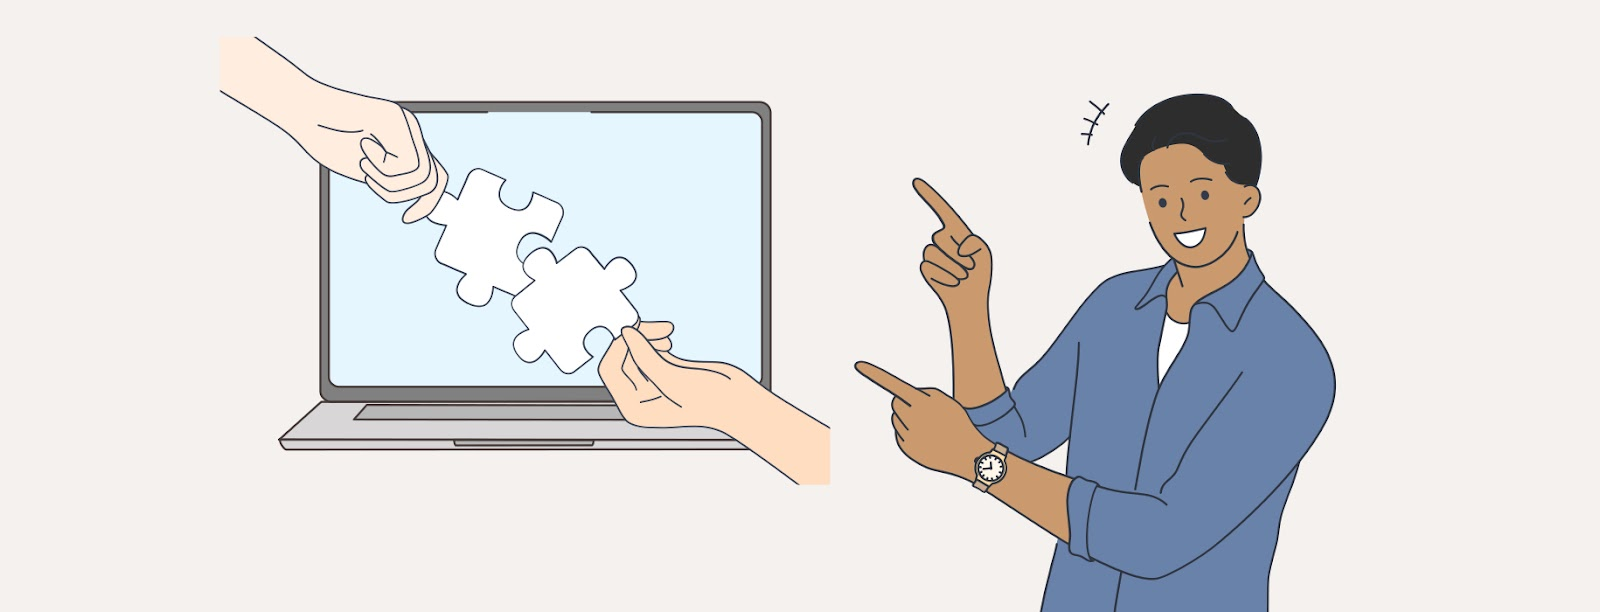 Illustration of hands putting jigsaw pieces together on a computer screen